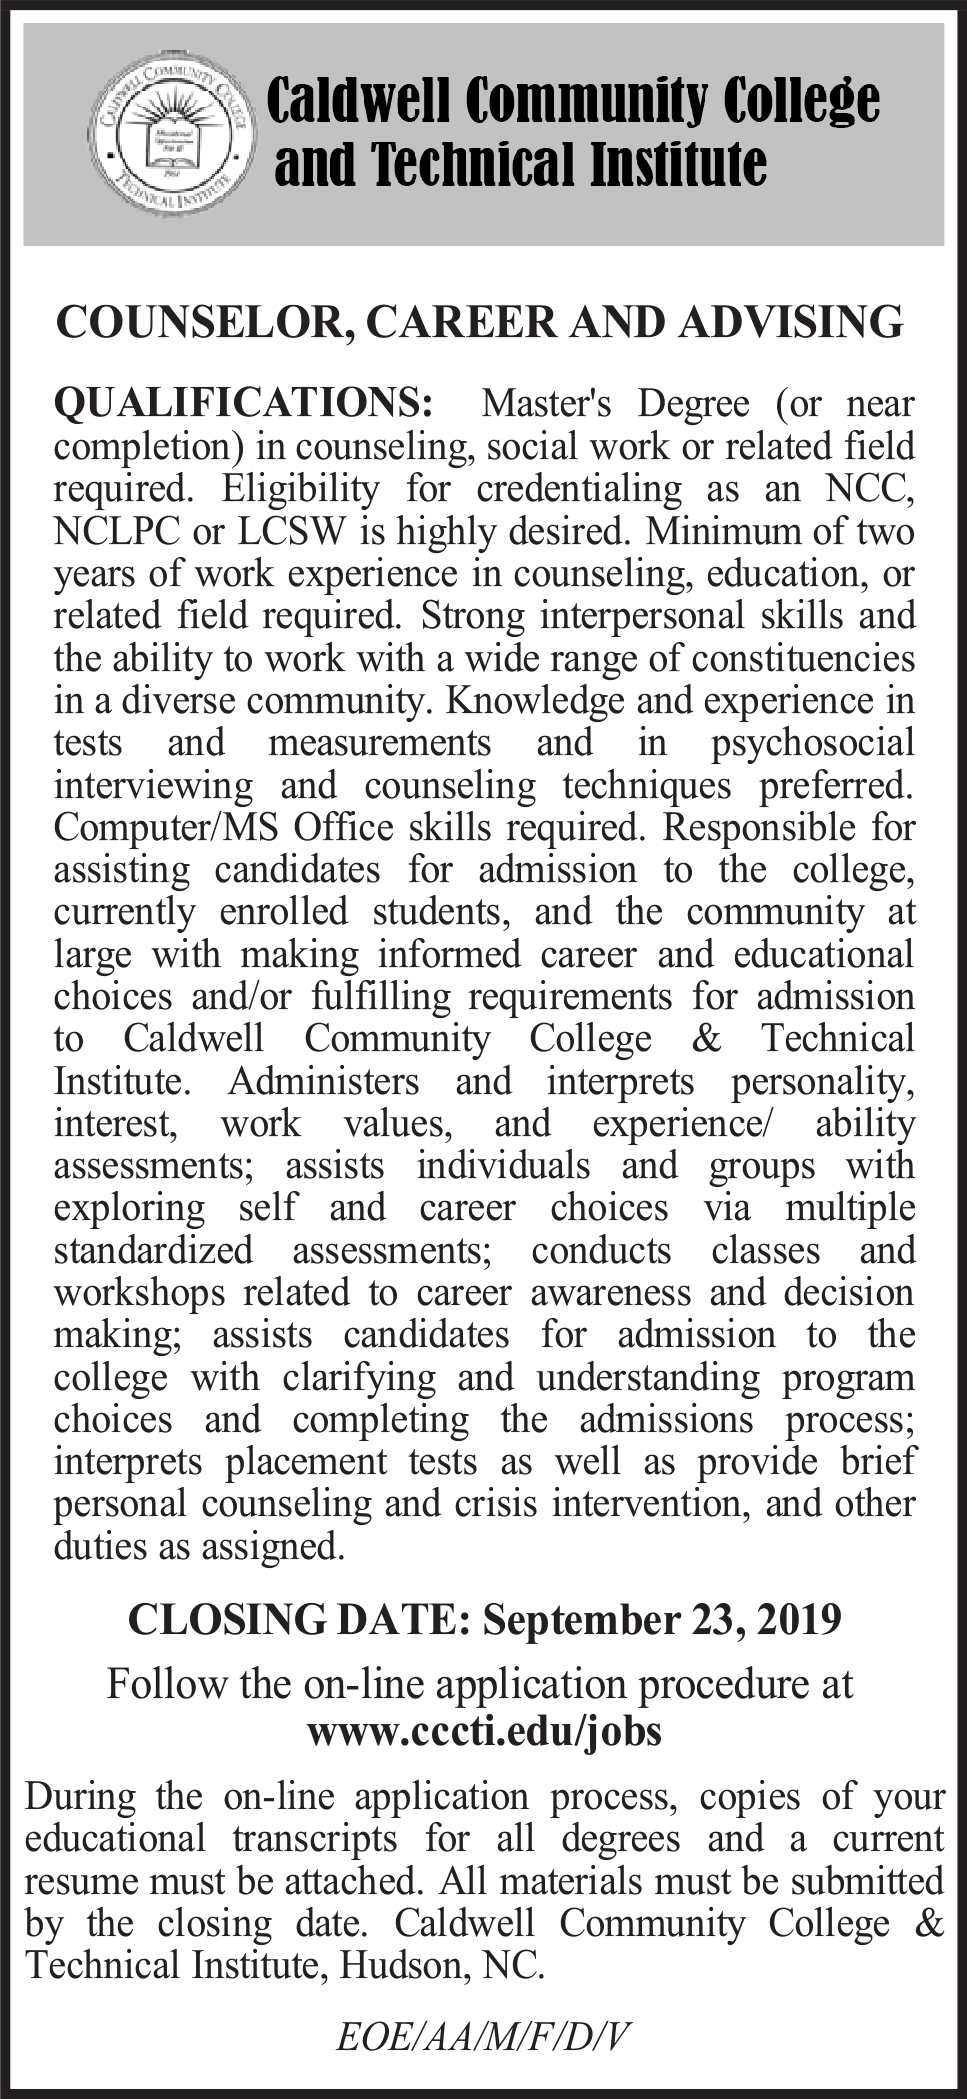 counselor, career and advising